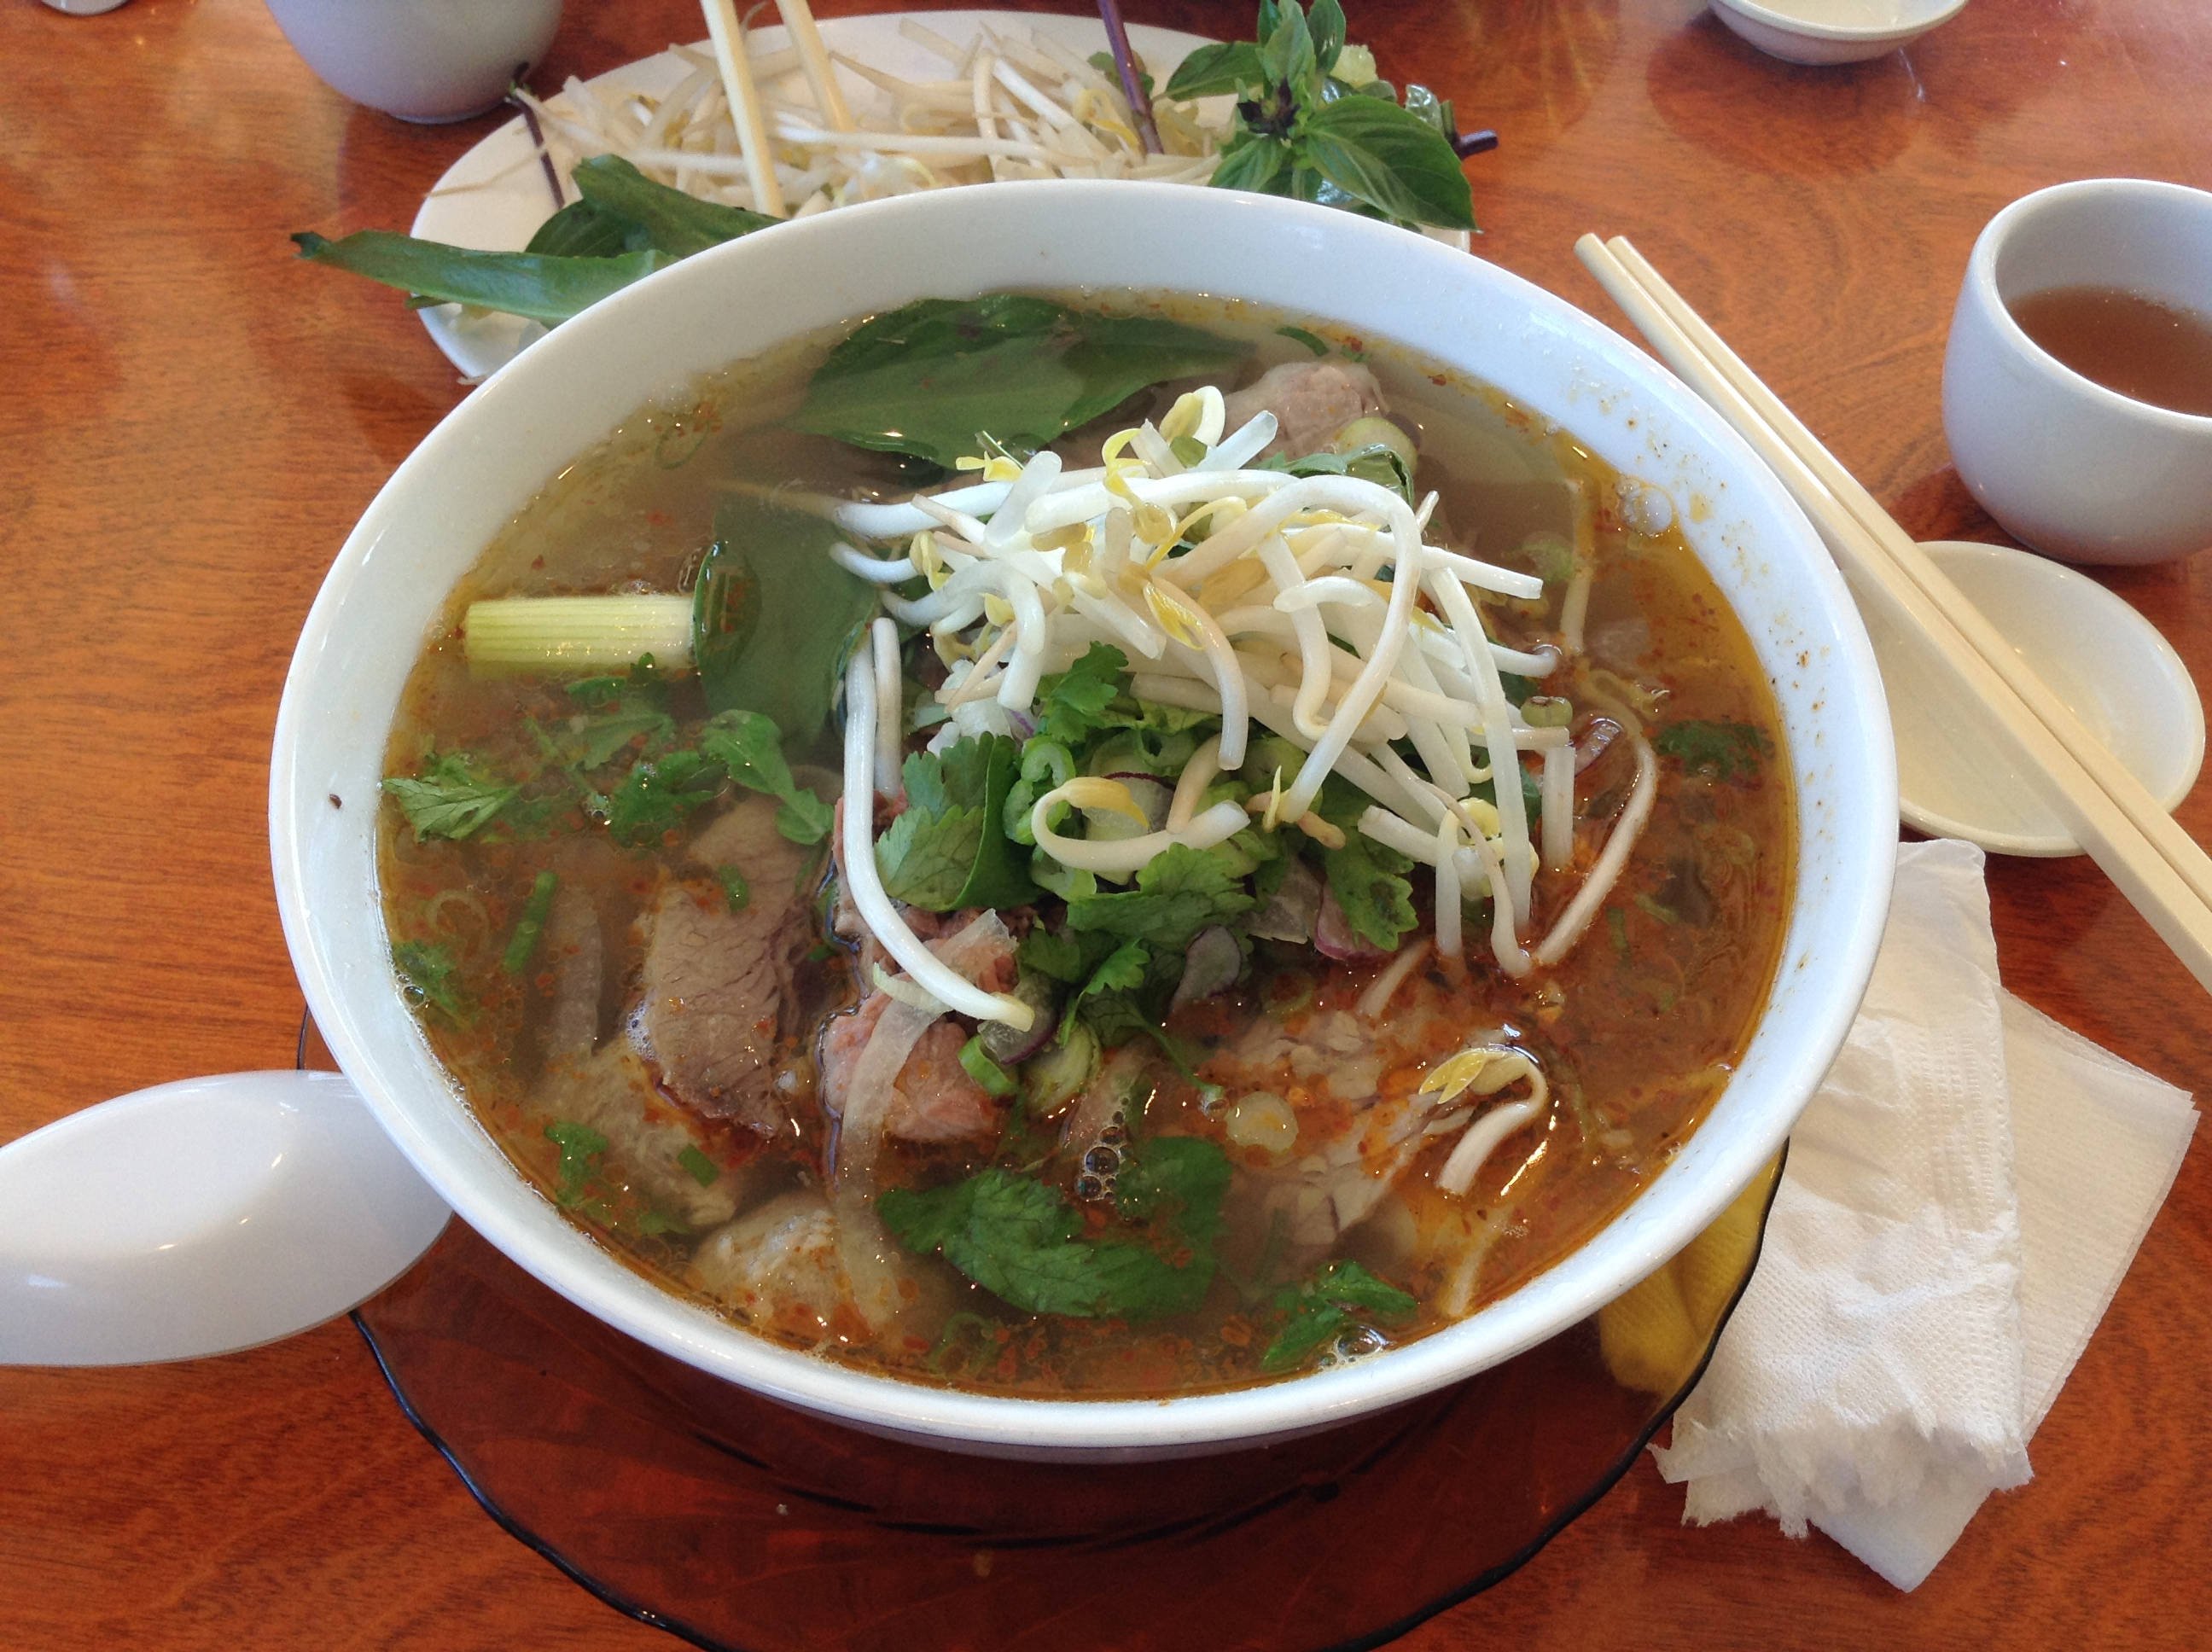 Hung's Special Beef Pho: Tripe, Tendon, Rare and Well Done